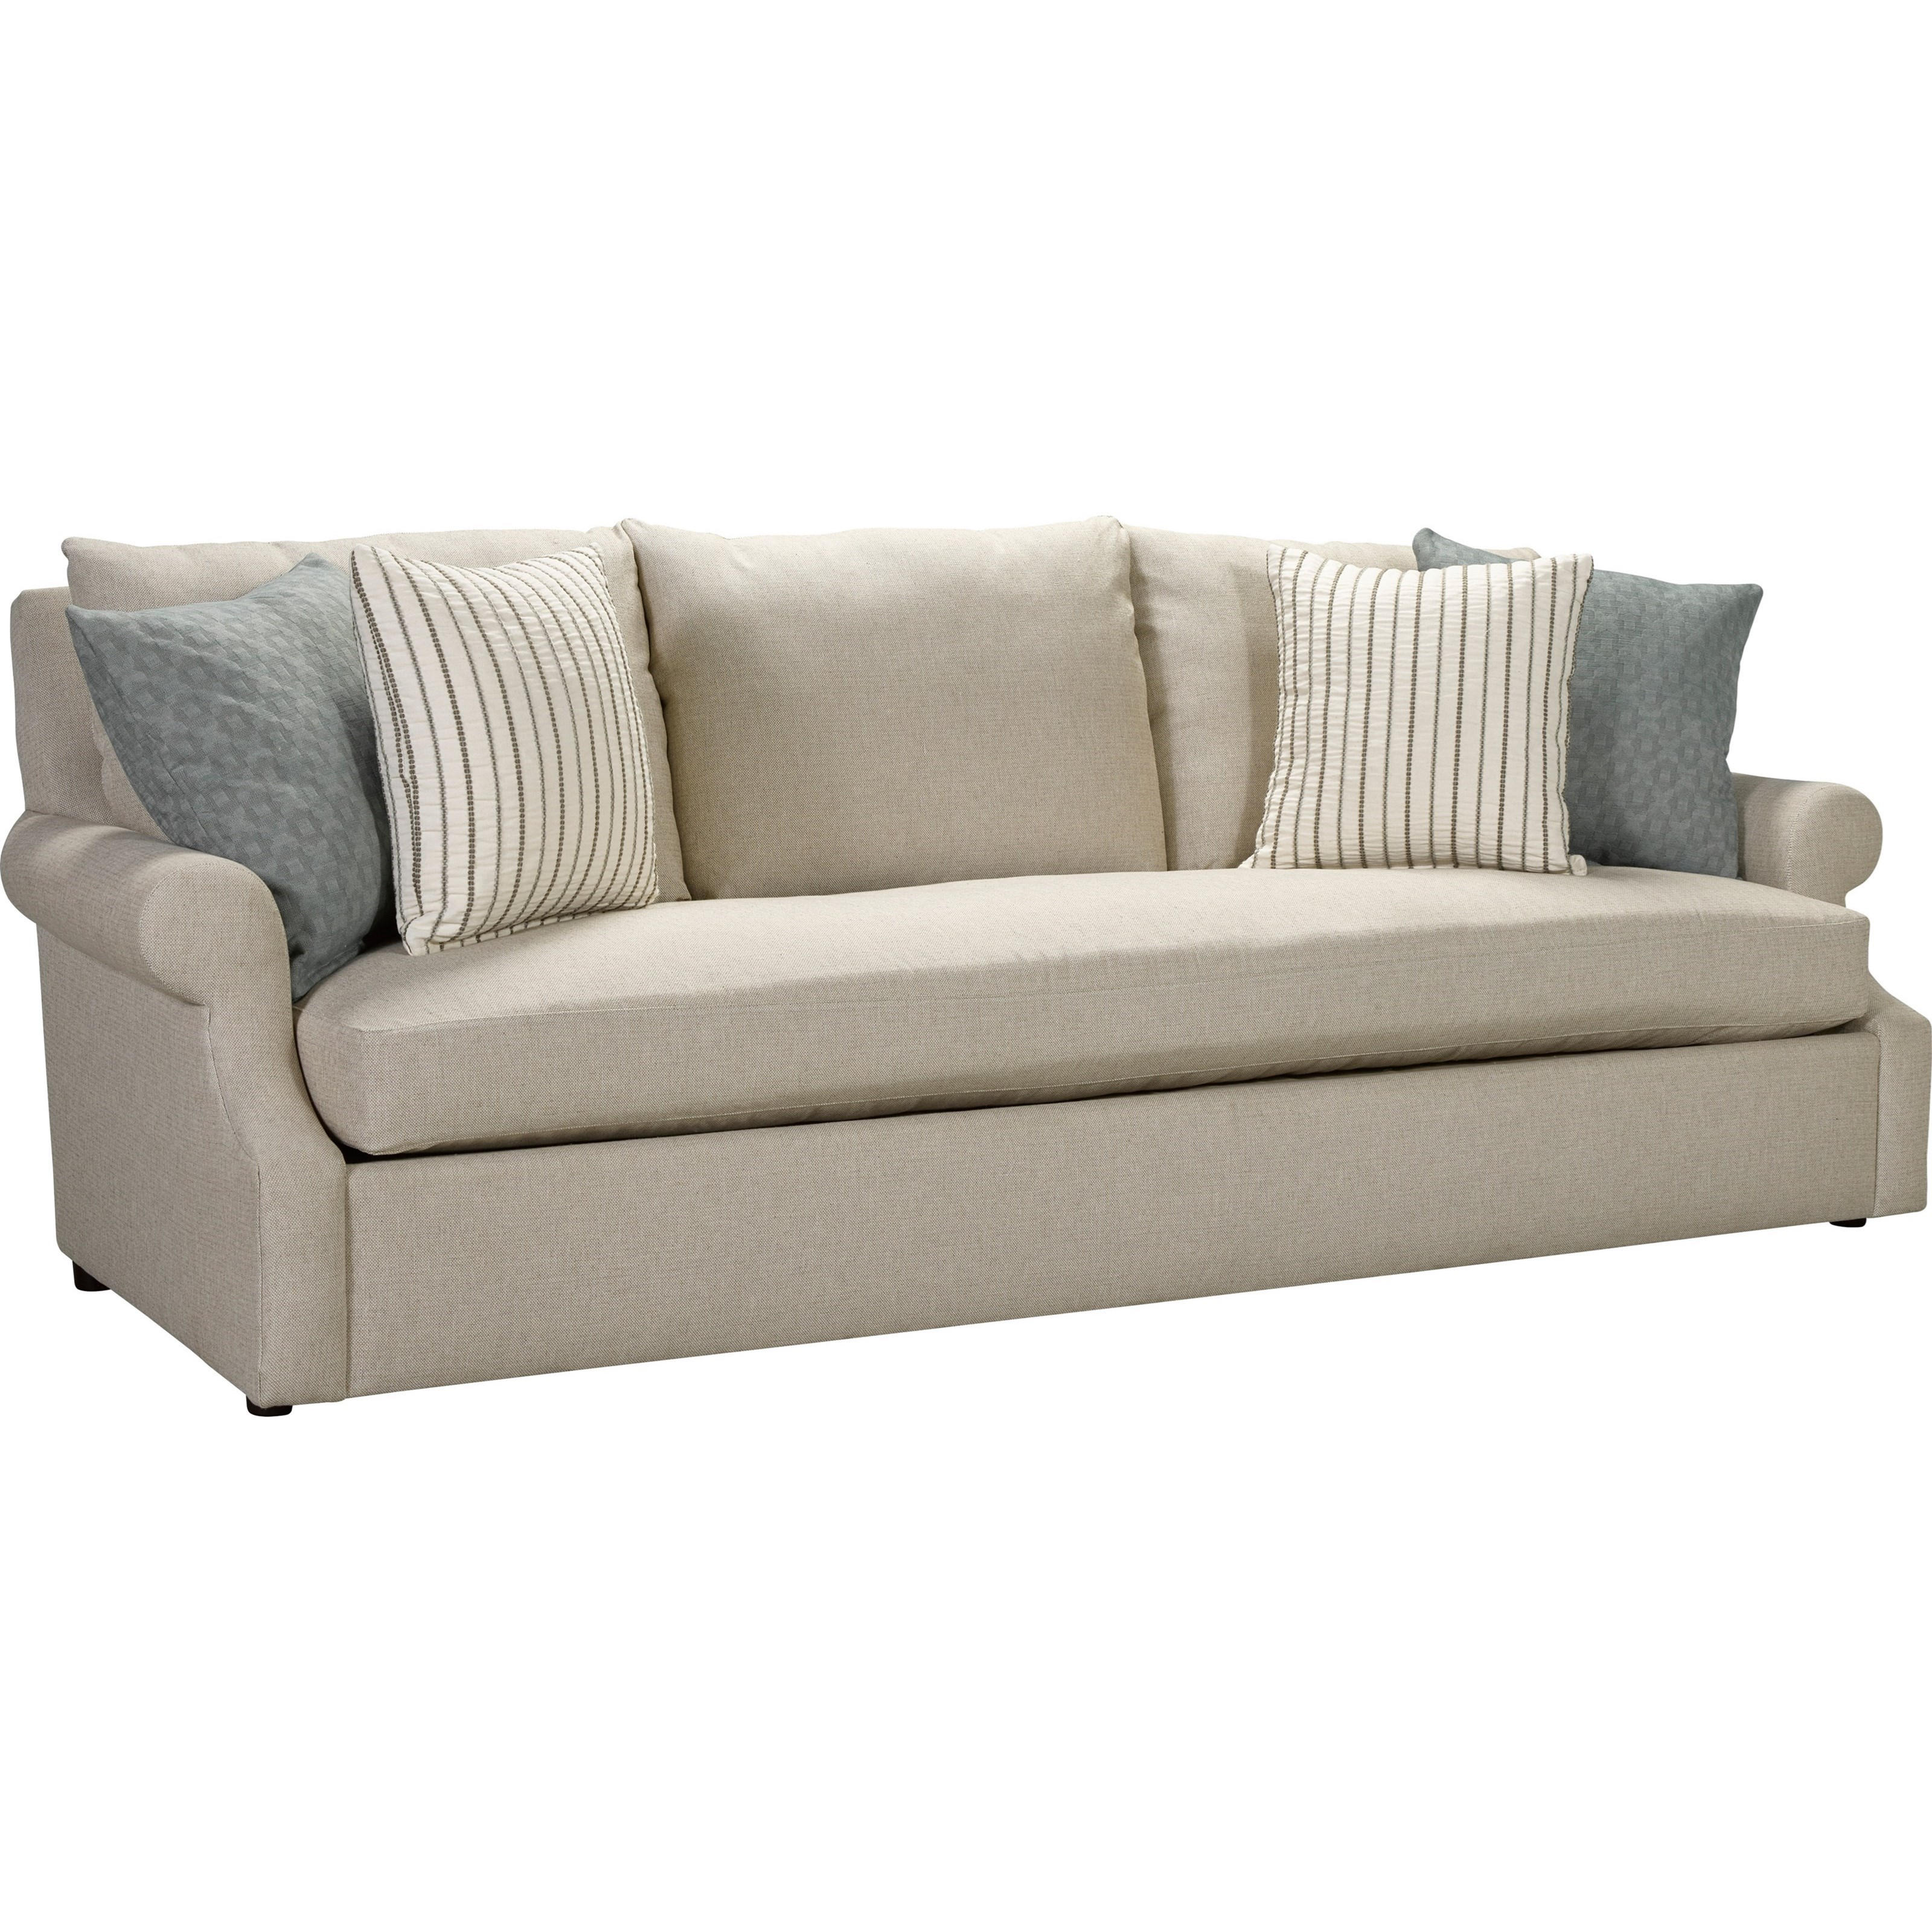 Broyhill Furniture Willa Casual Sofa With Single Seat Cushion | Broyhill Of  Denver | Sofas